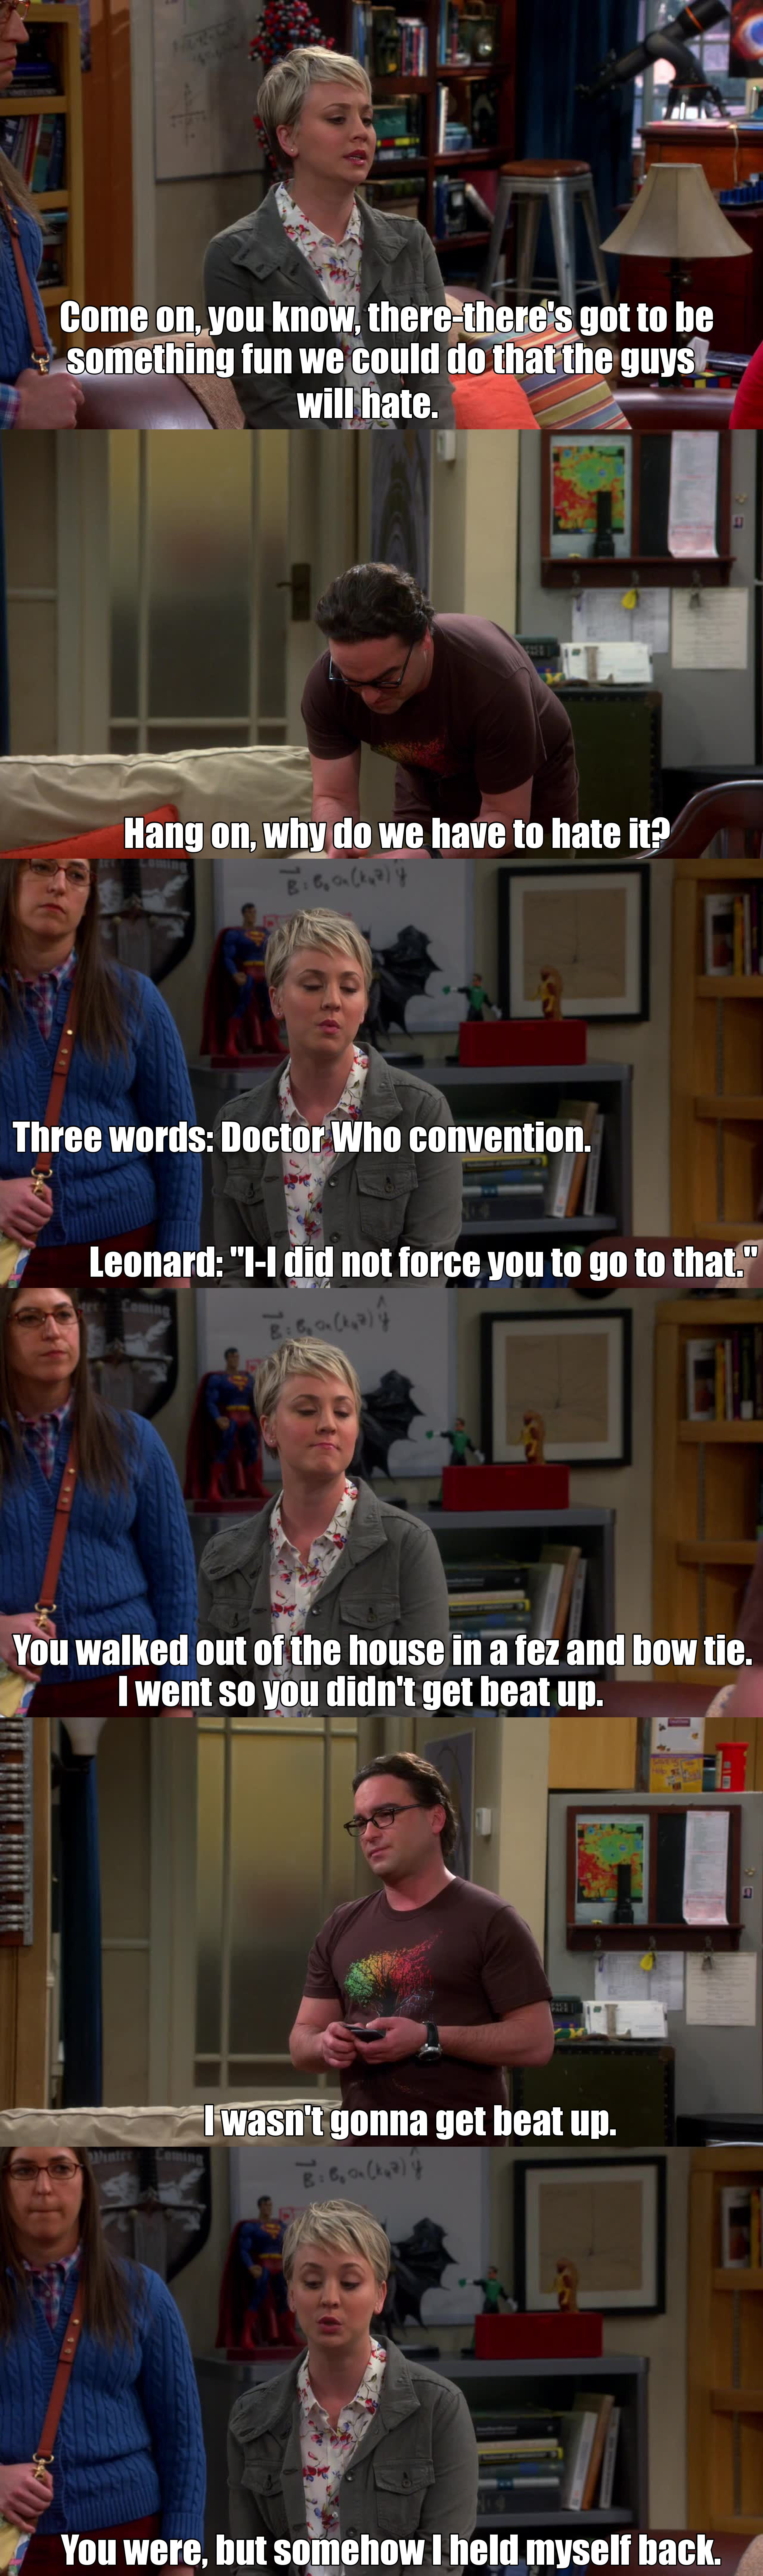 Penny is not a whovian. Bad Penny.